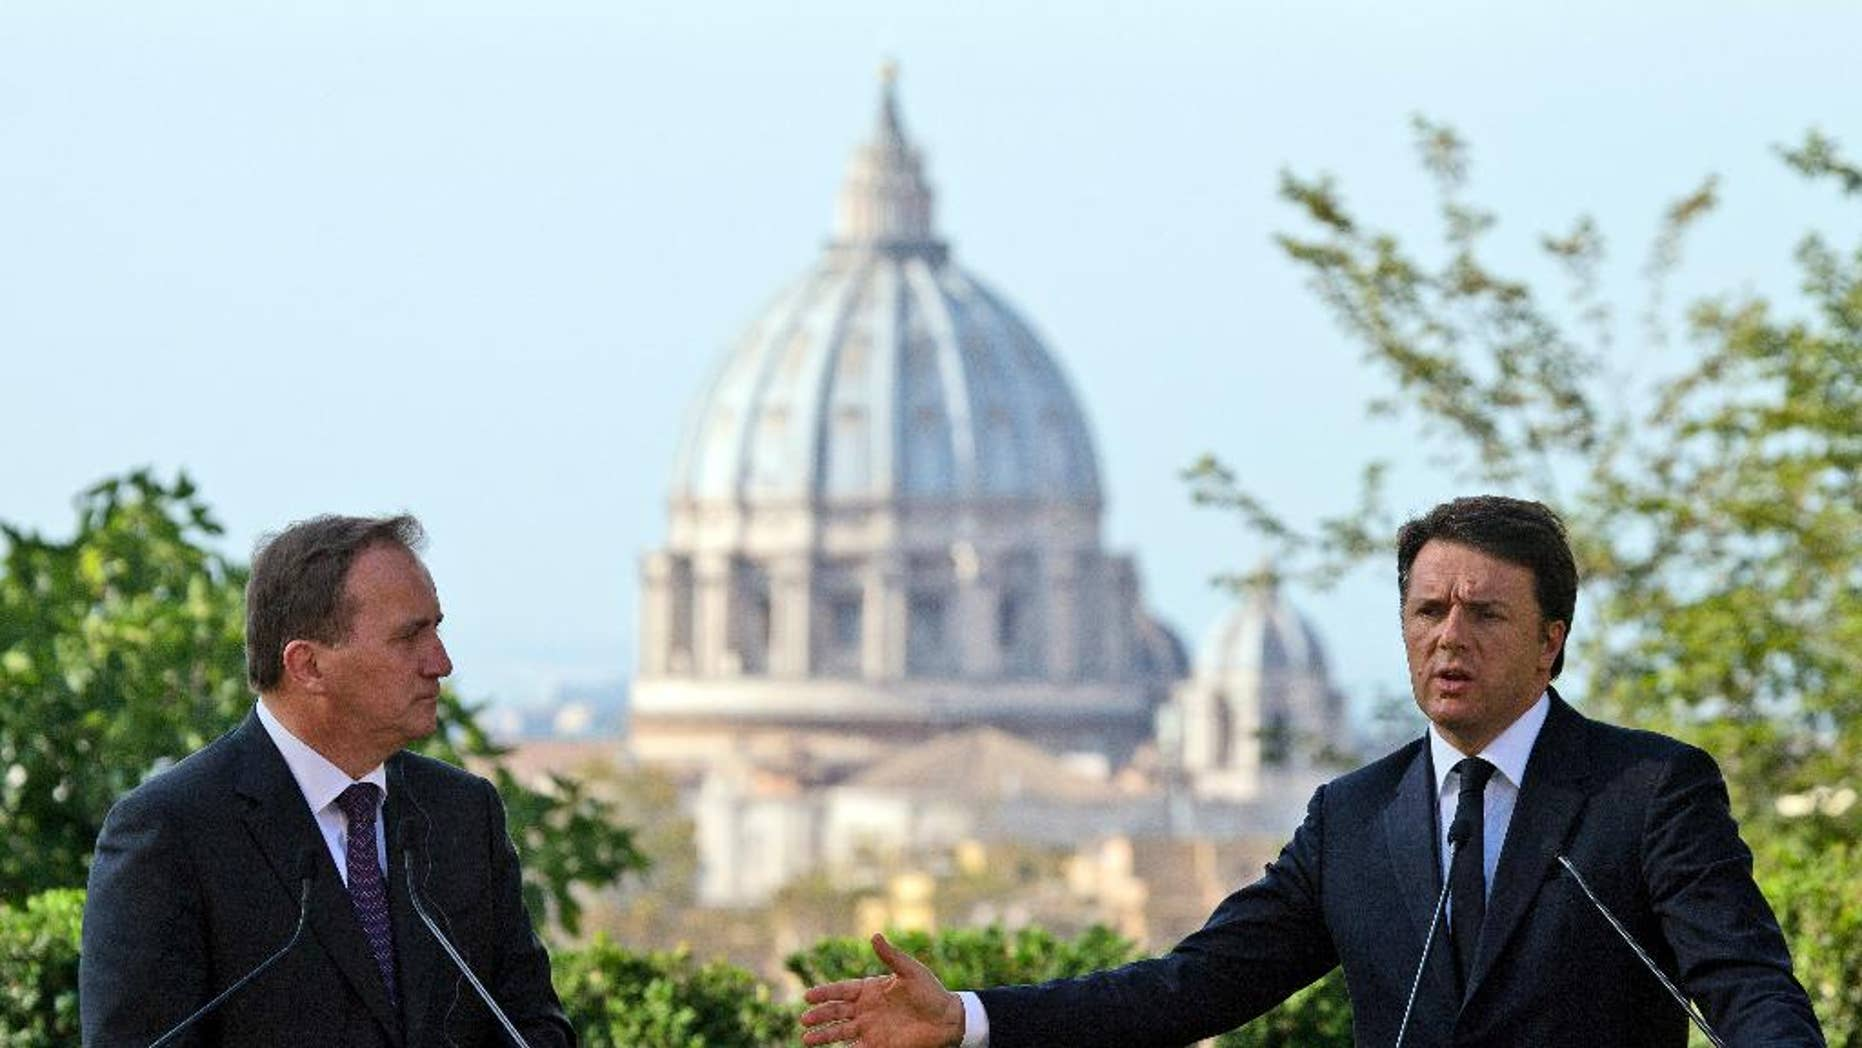 Italian Premier Matteo Renzi, right, and Swedish Prime Minister Stefan Lofven, backdropped by the St. Peter's Basilica, talk to journalists during a press conference at the end of their meeting, at Rome's Villa Panphilii, Wednesday, July 6, 2016.  (AP Photo/Andrew Medichini)